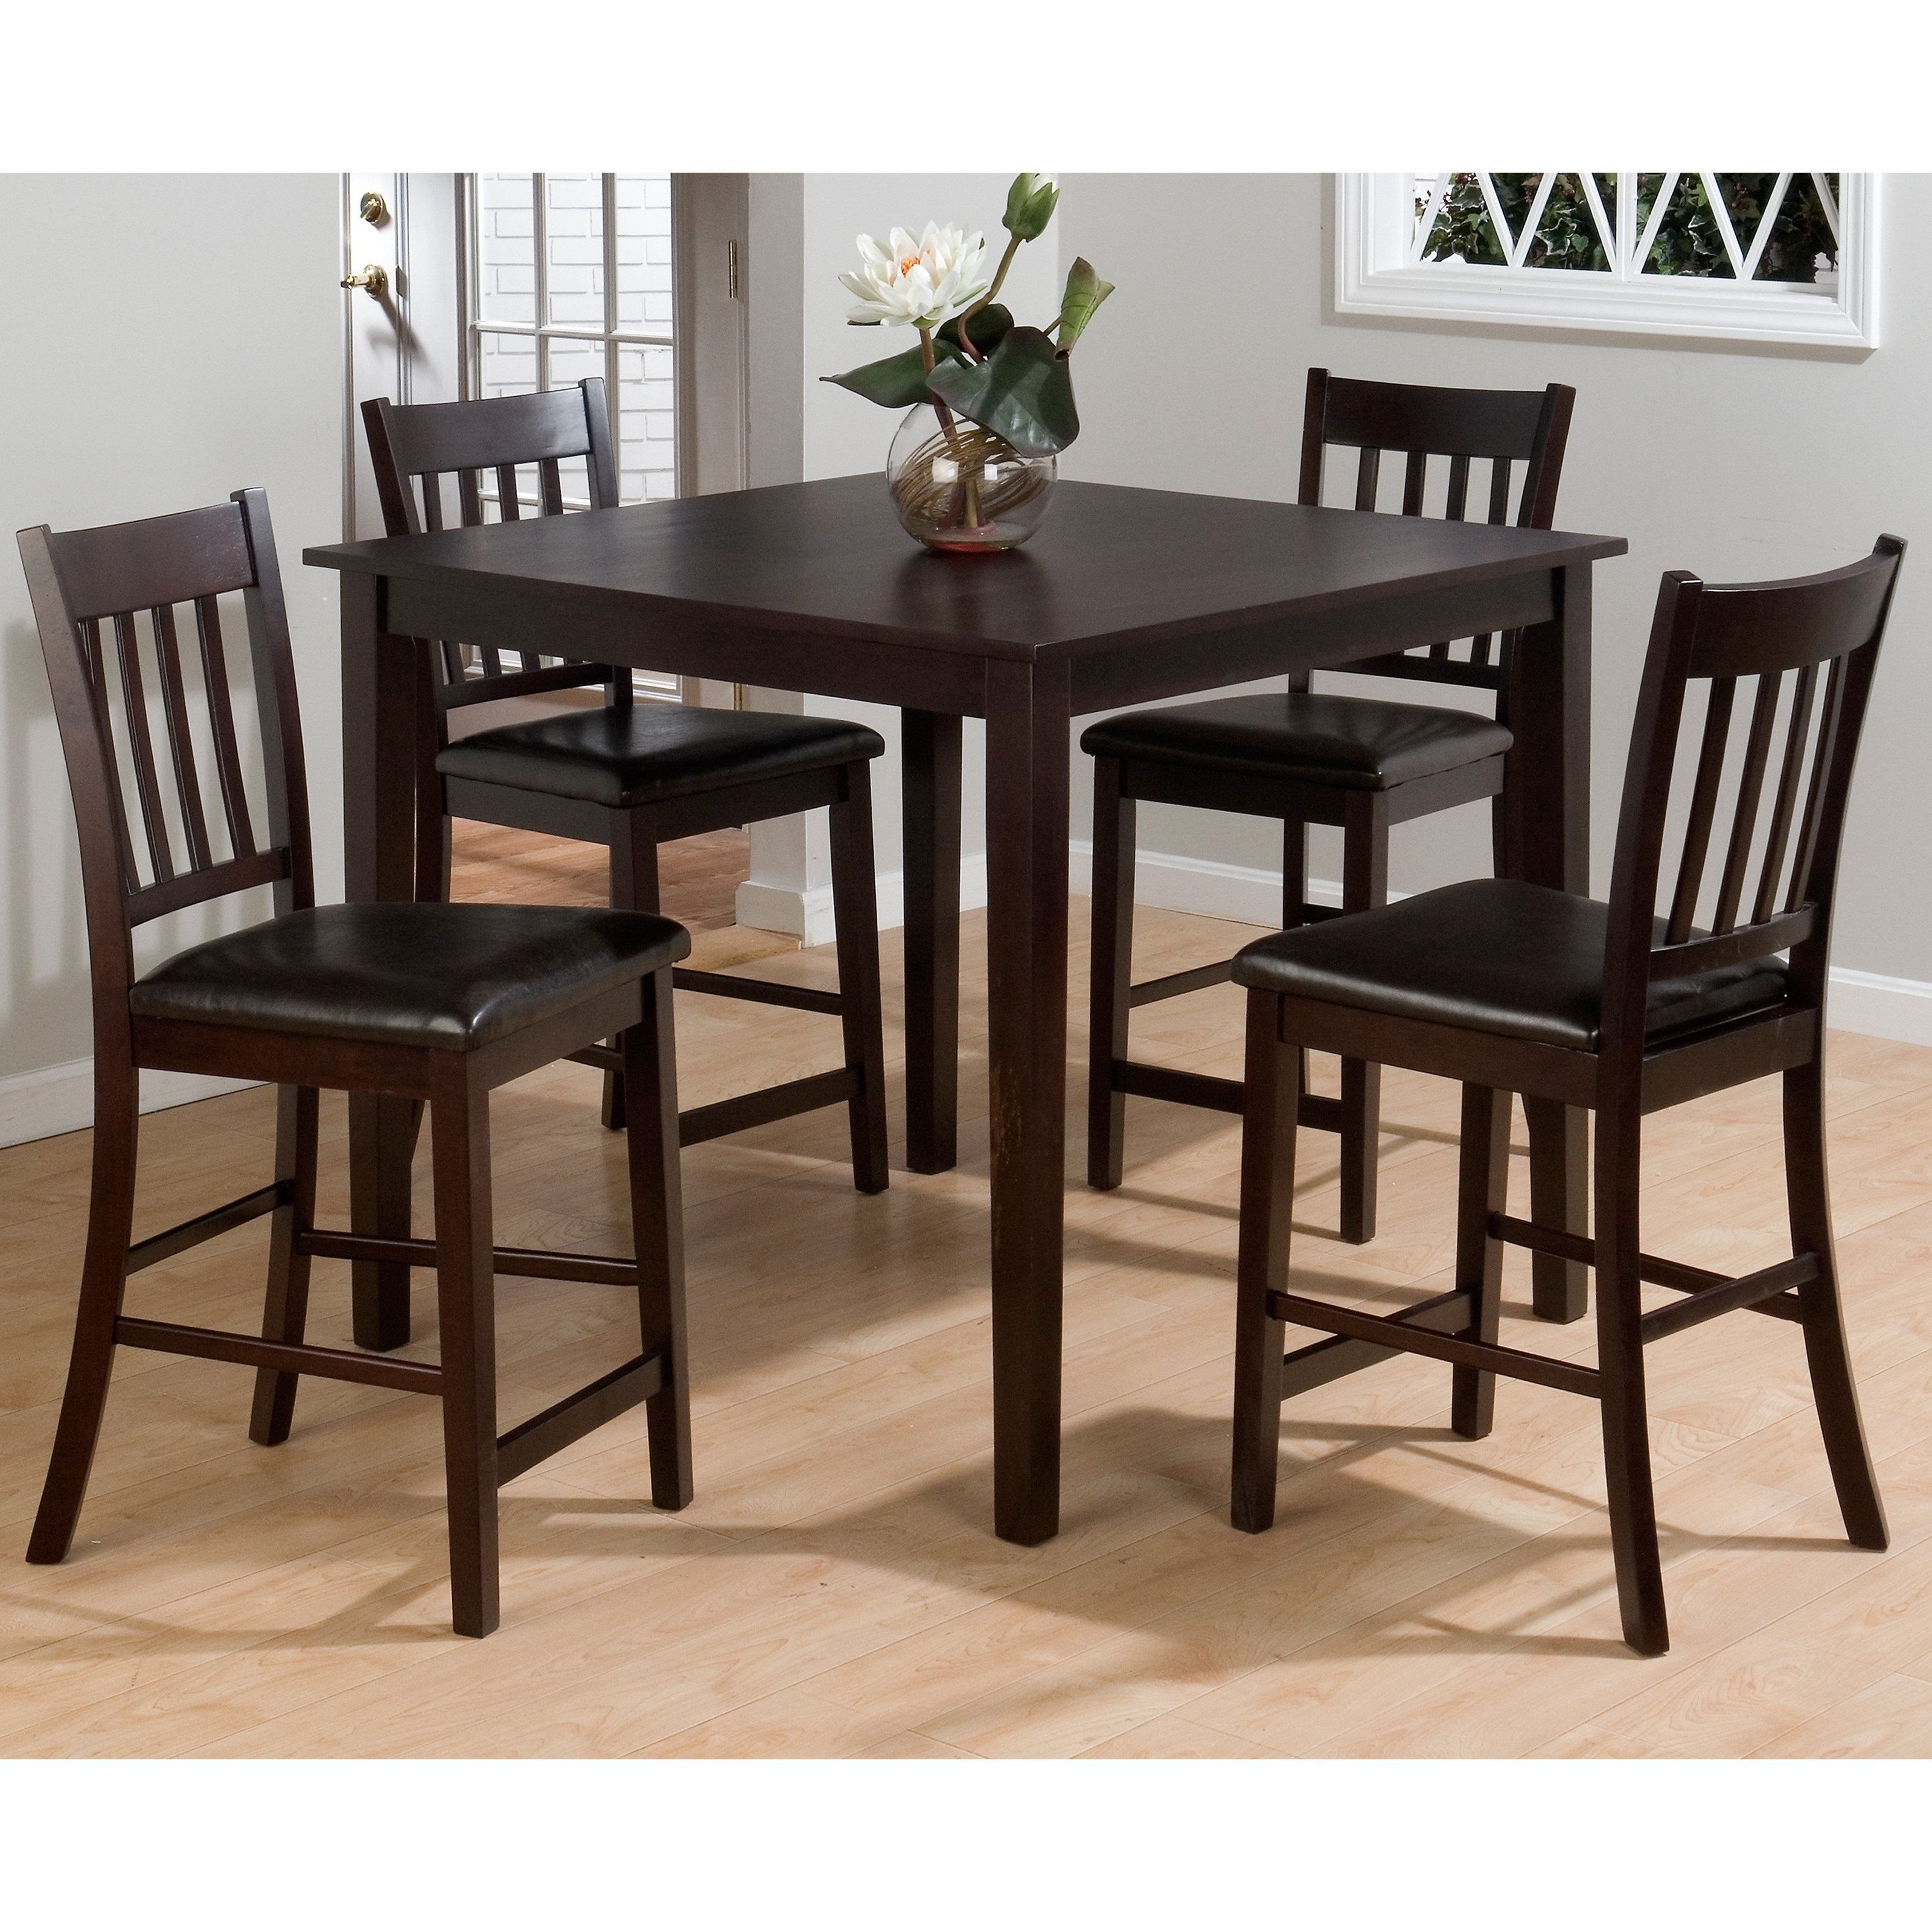 Jofran Marin County 5 Piece Counter Height Dining Set